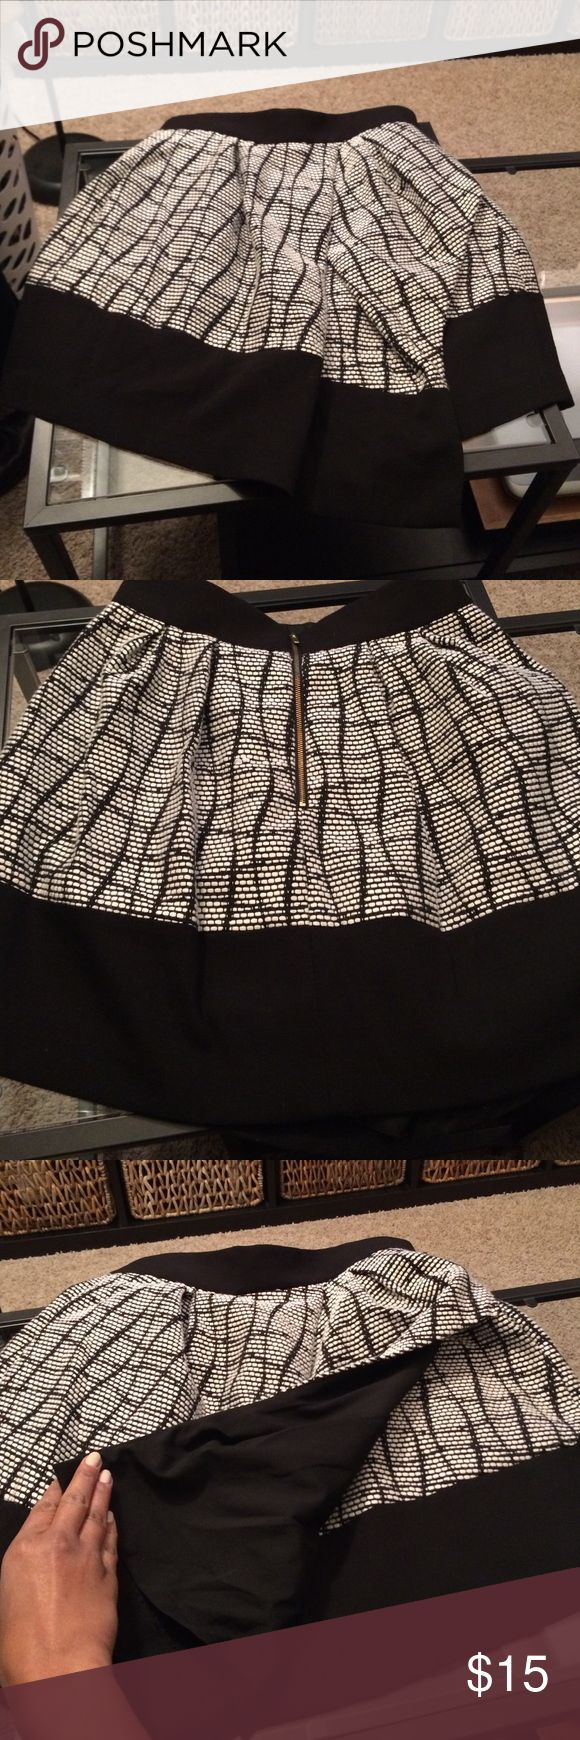 Banana Republic black and white high waisted skirt Great winter layering skirt!!!! Black and white stitching. I have only worn it once and it no longer fits. Wonderful day to night piece from banana republic Banana Republic Skirts Midi